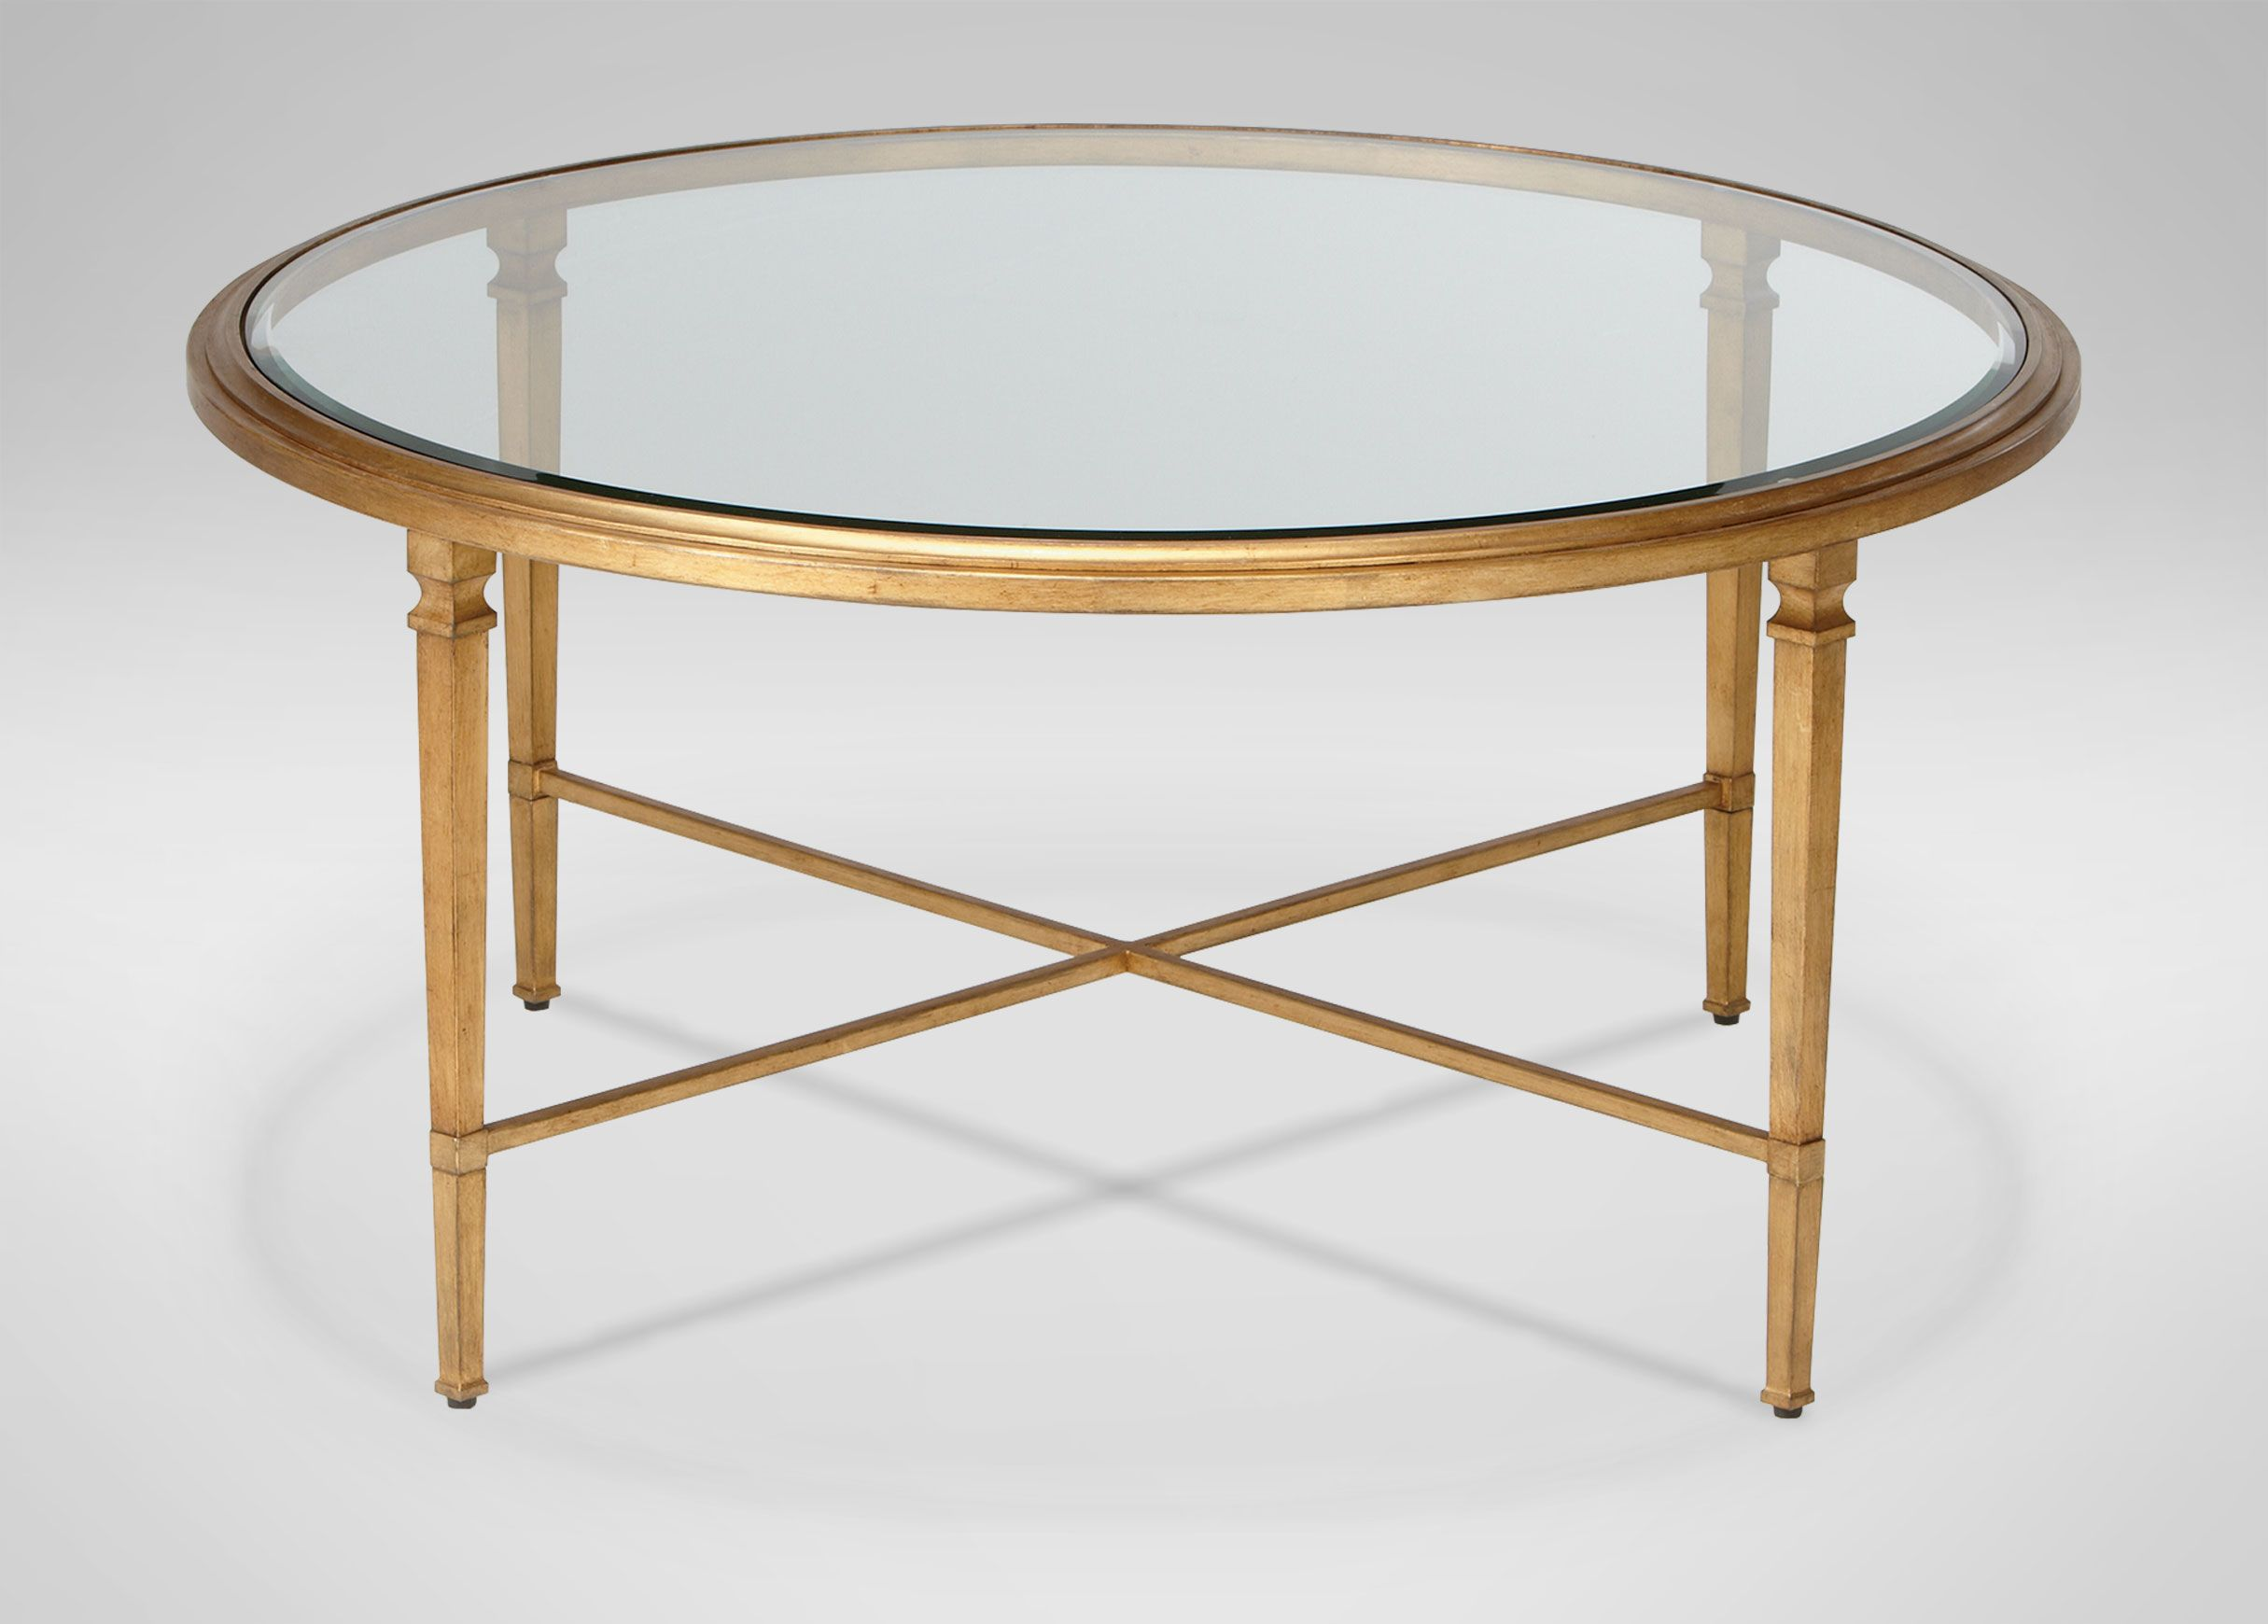 Heron Round Coffee Table Coffee Tables Coffee Table Images Round Coffee Table Pine Coffee Table [ 1740 x 2430 Pixel ]